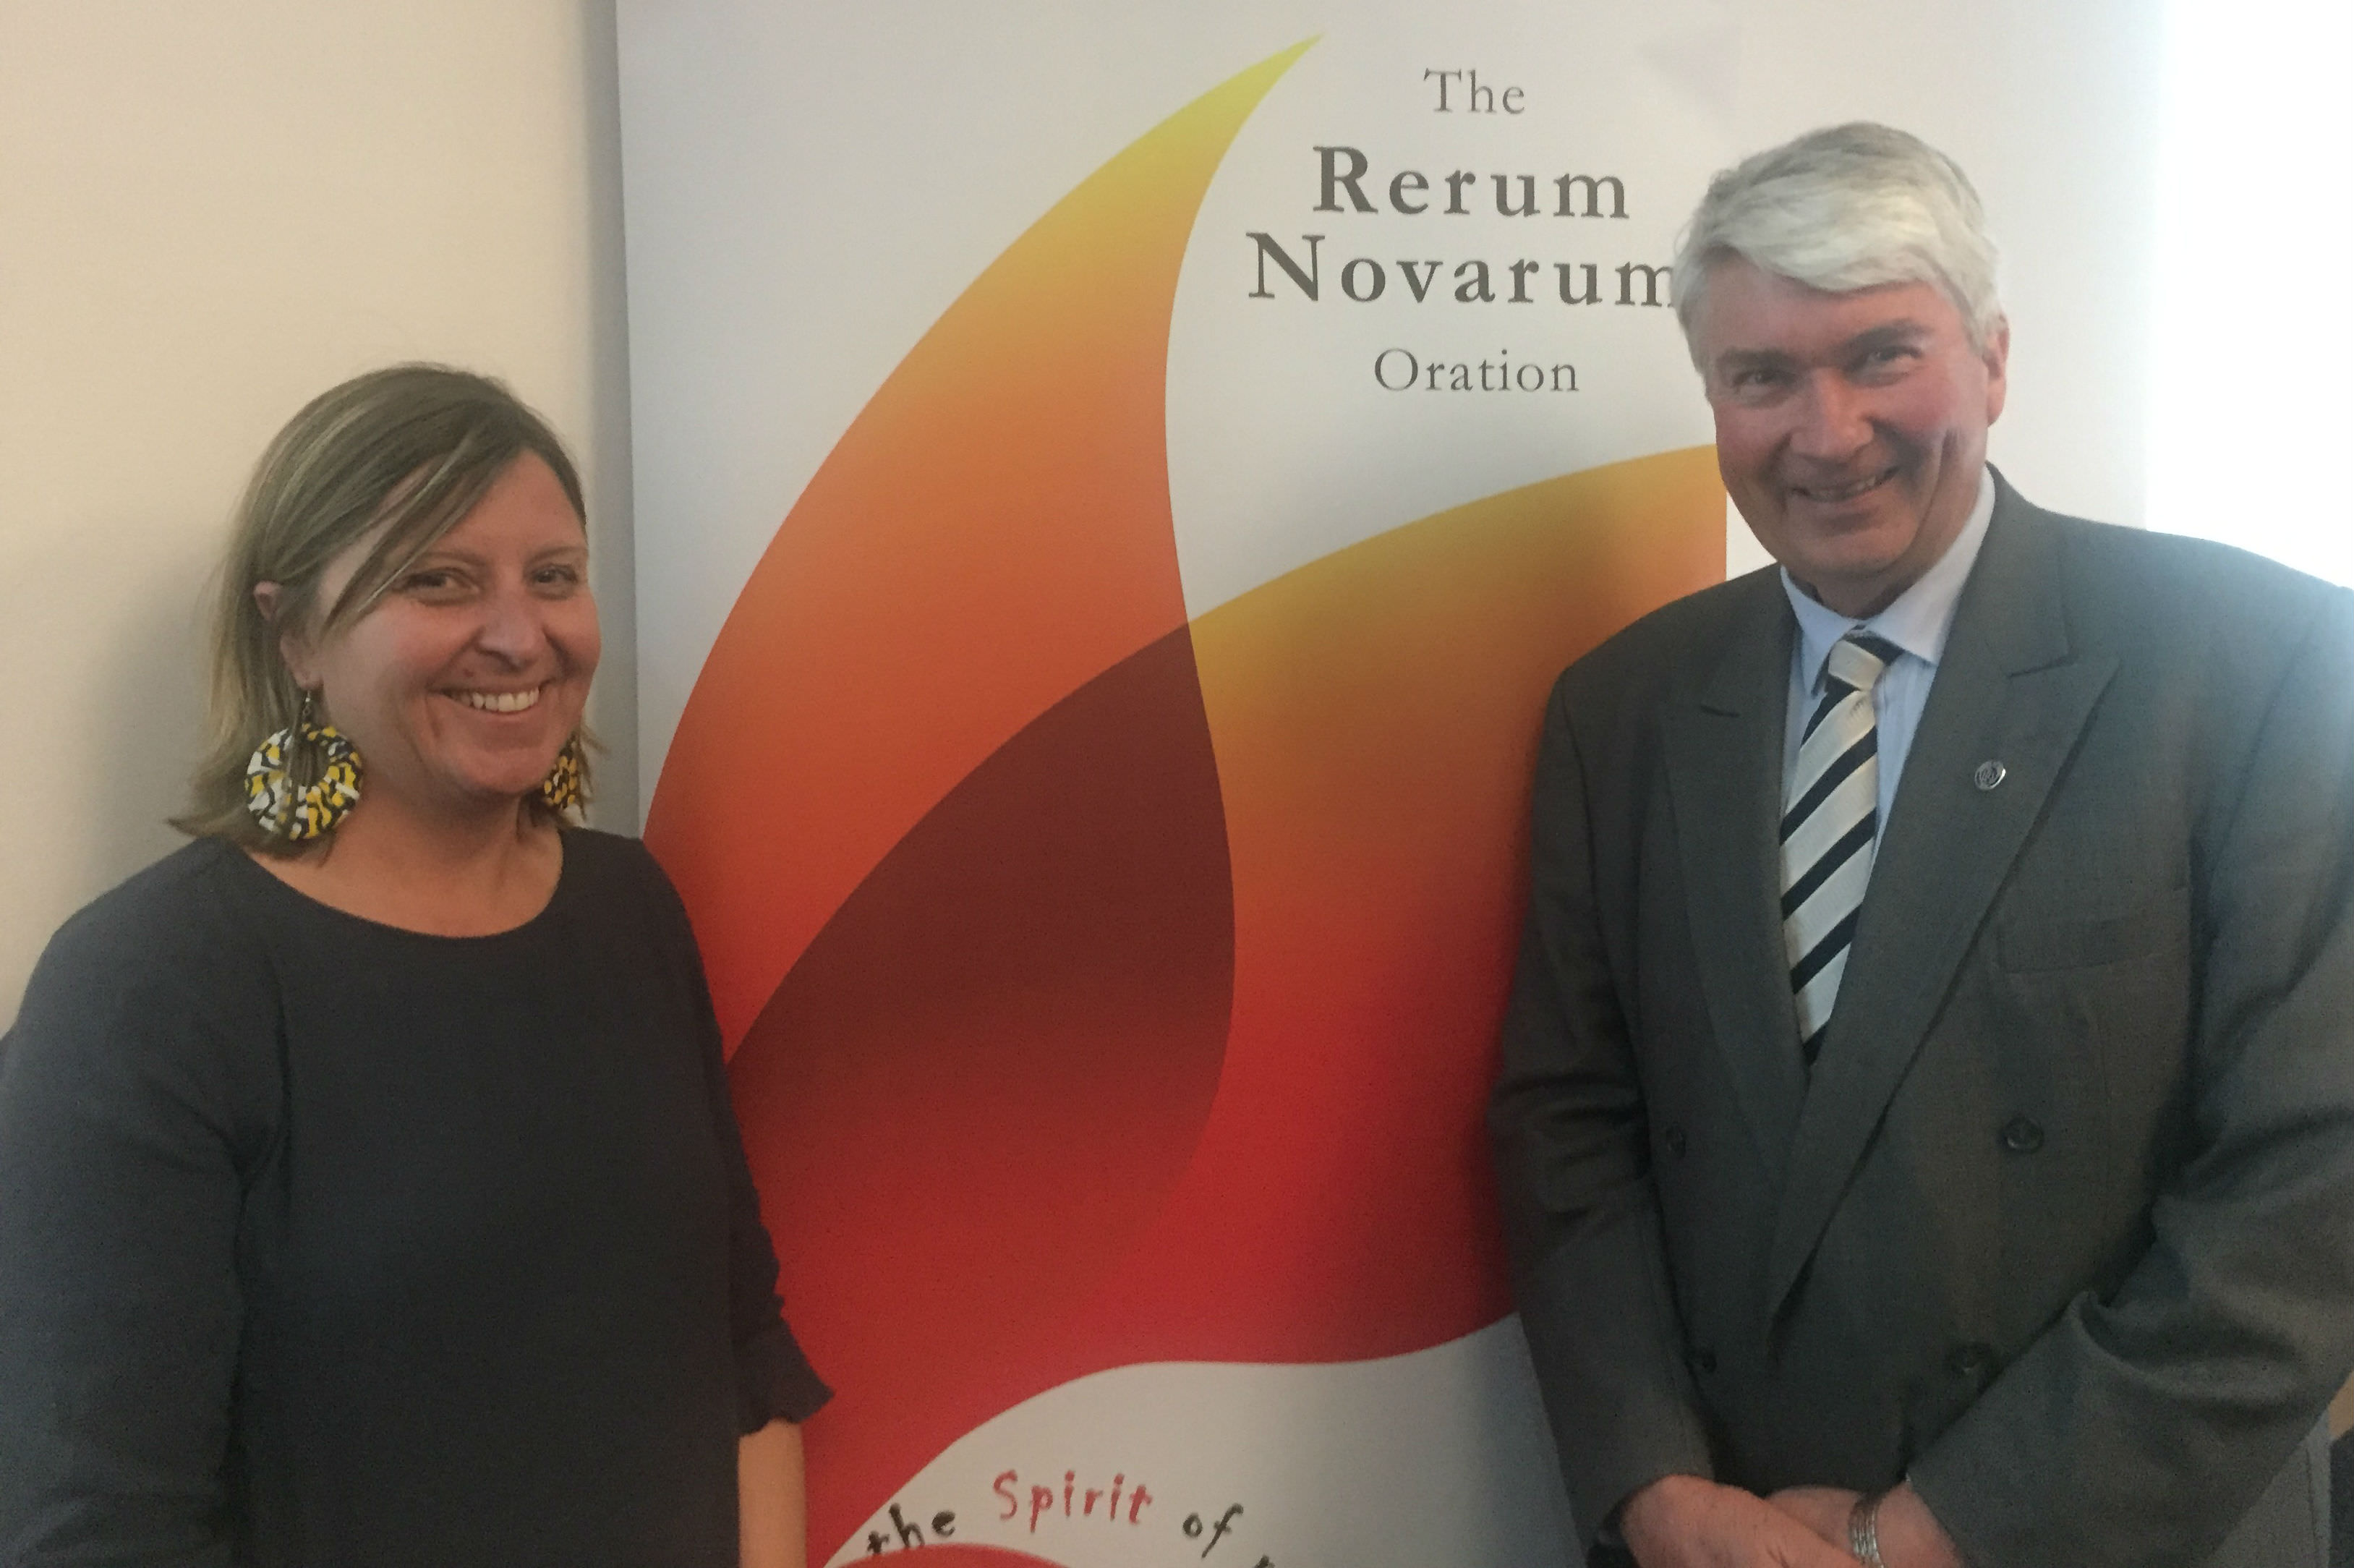 Frank Brennan (right) with respondent Brigid Henley from Jesuit Social Services